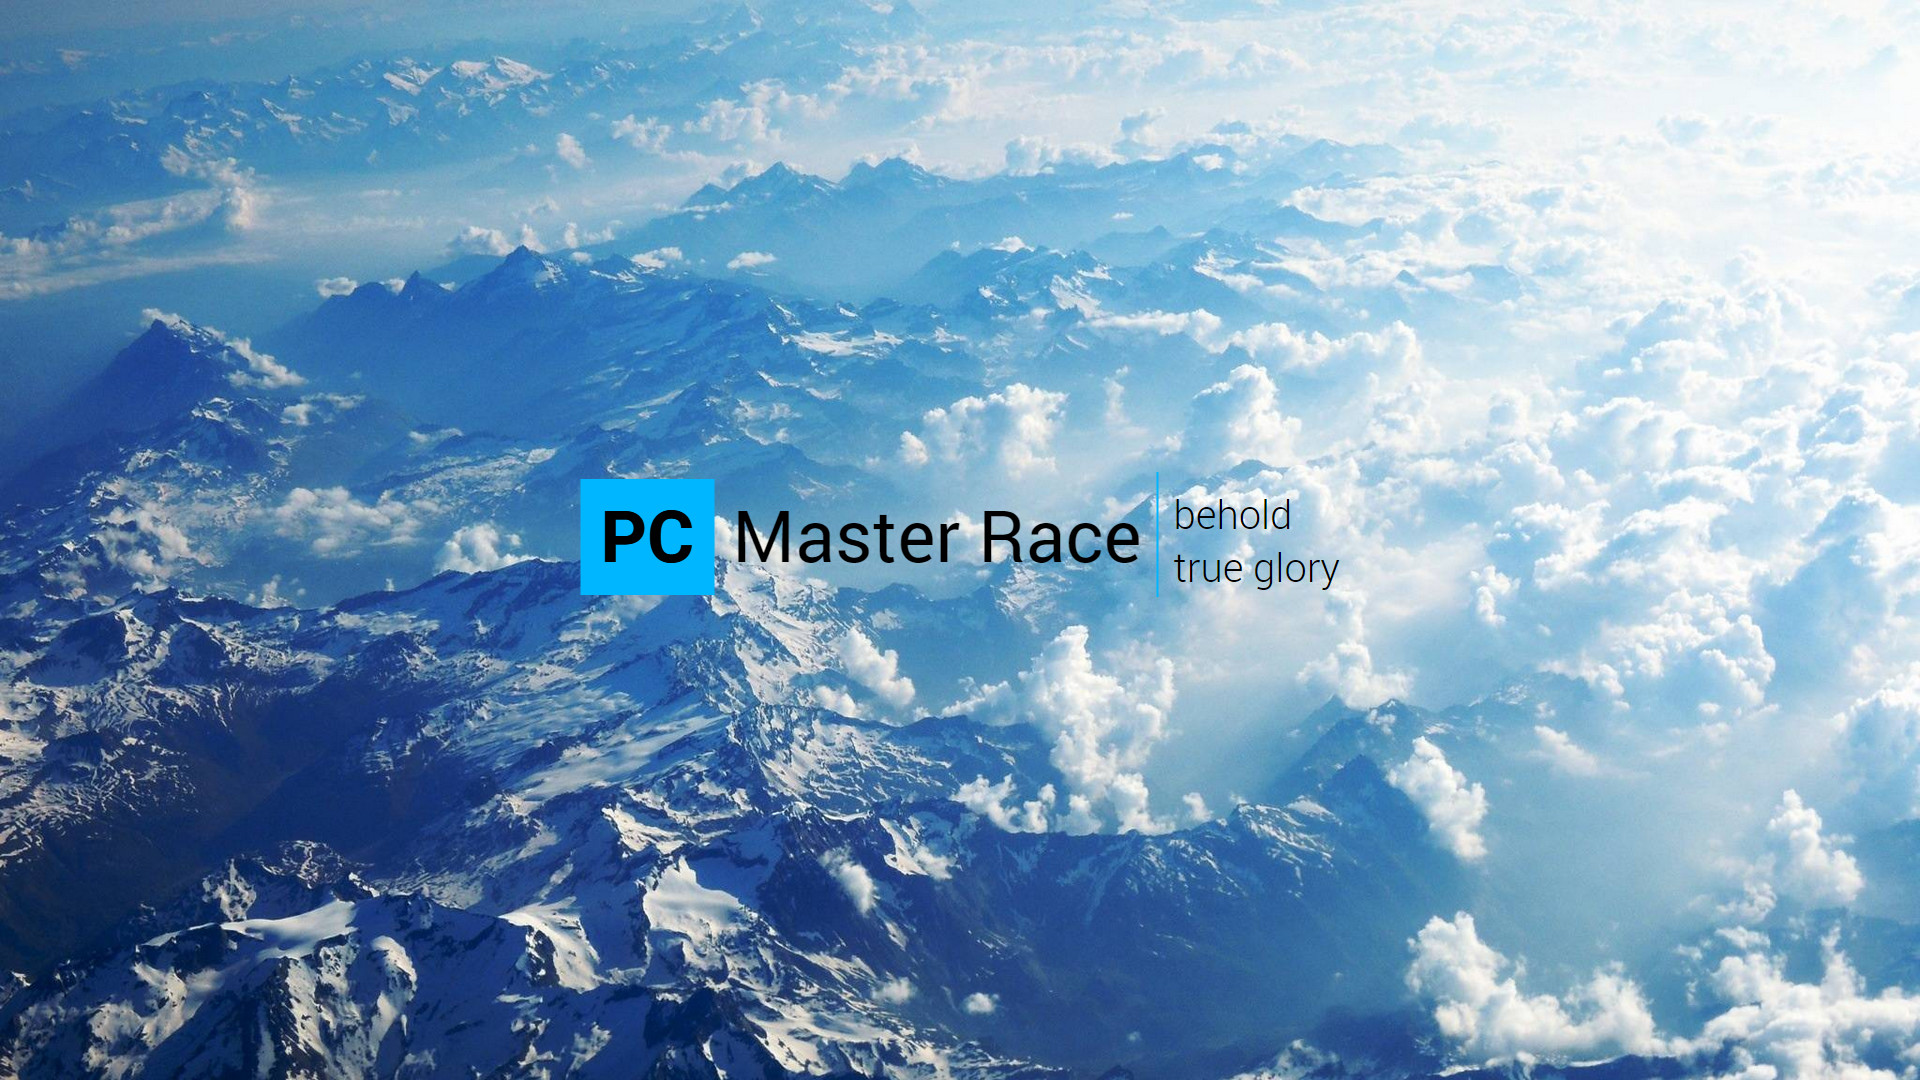 PC Master Race Wallpaper (82+ Images